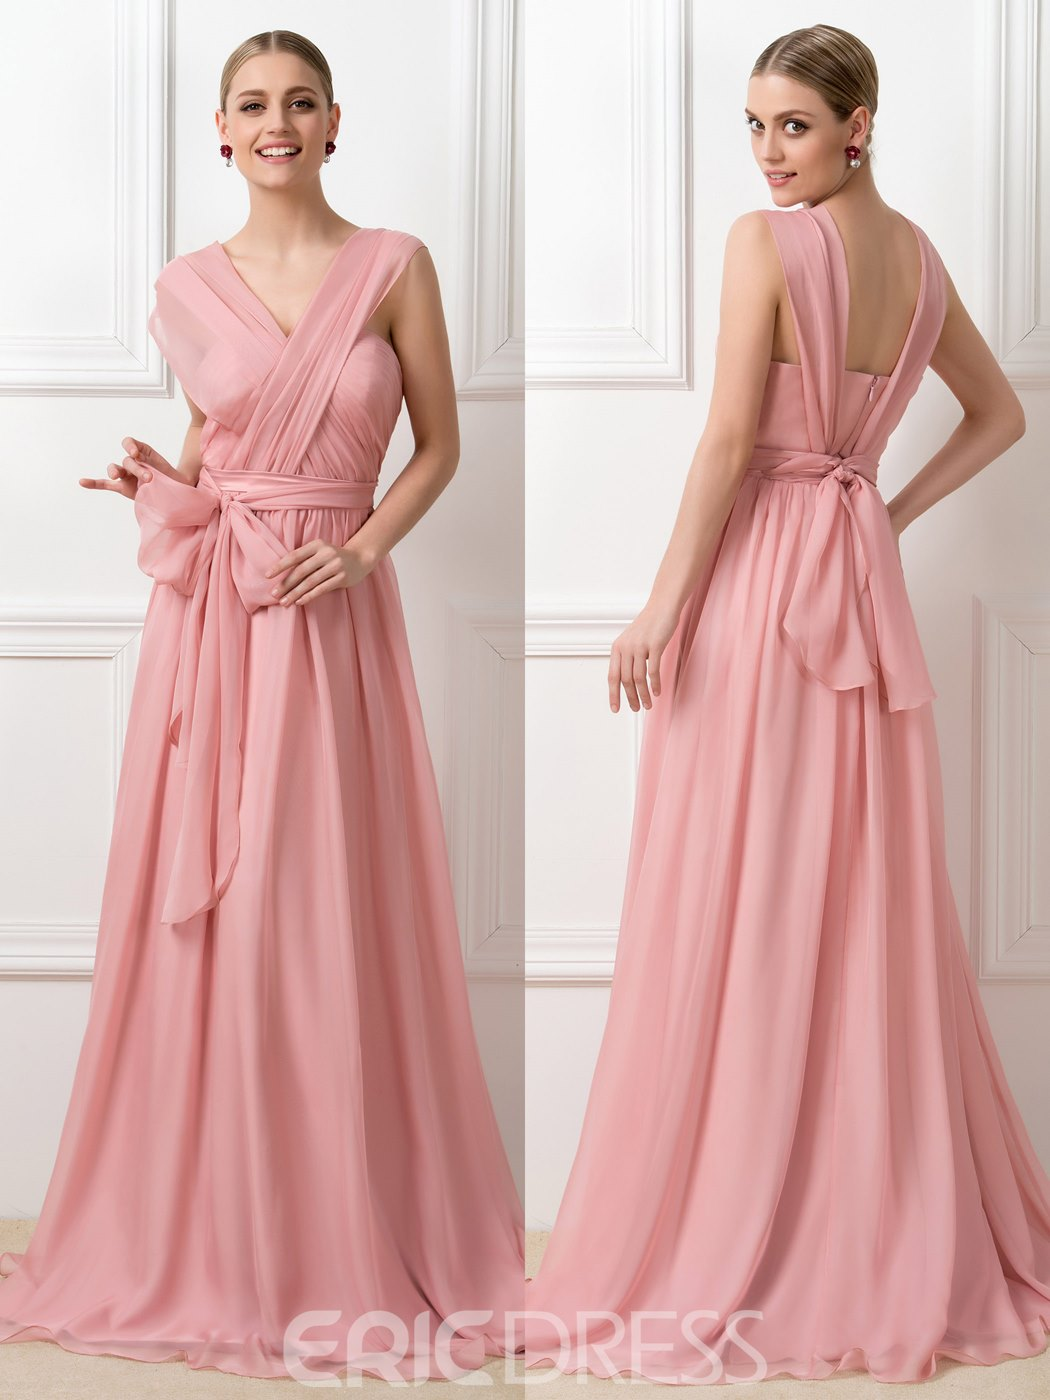 Concise Ruched Long Bridesmaid Dress